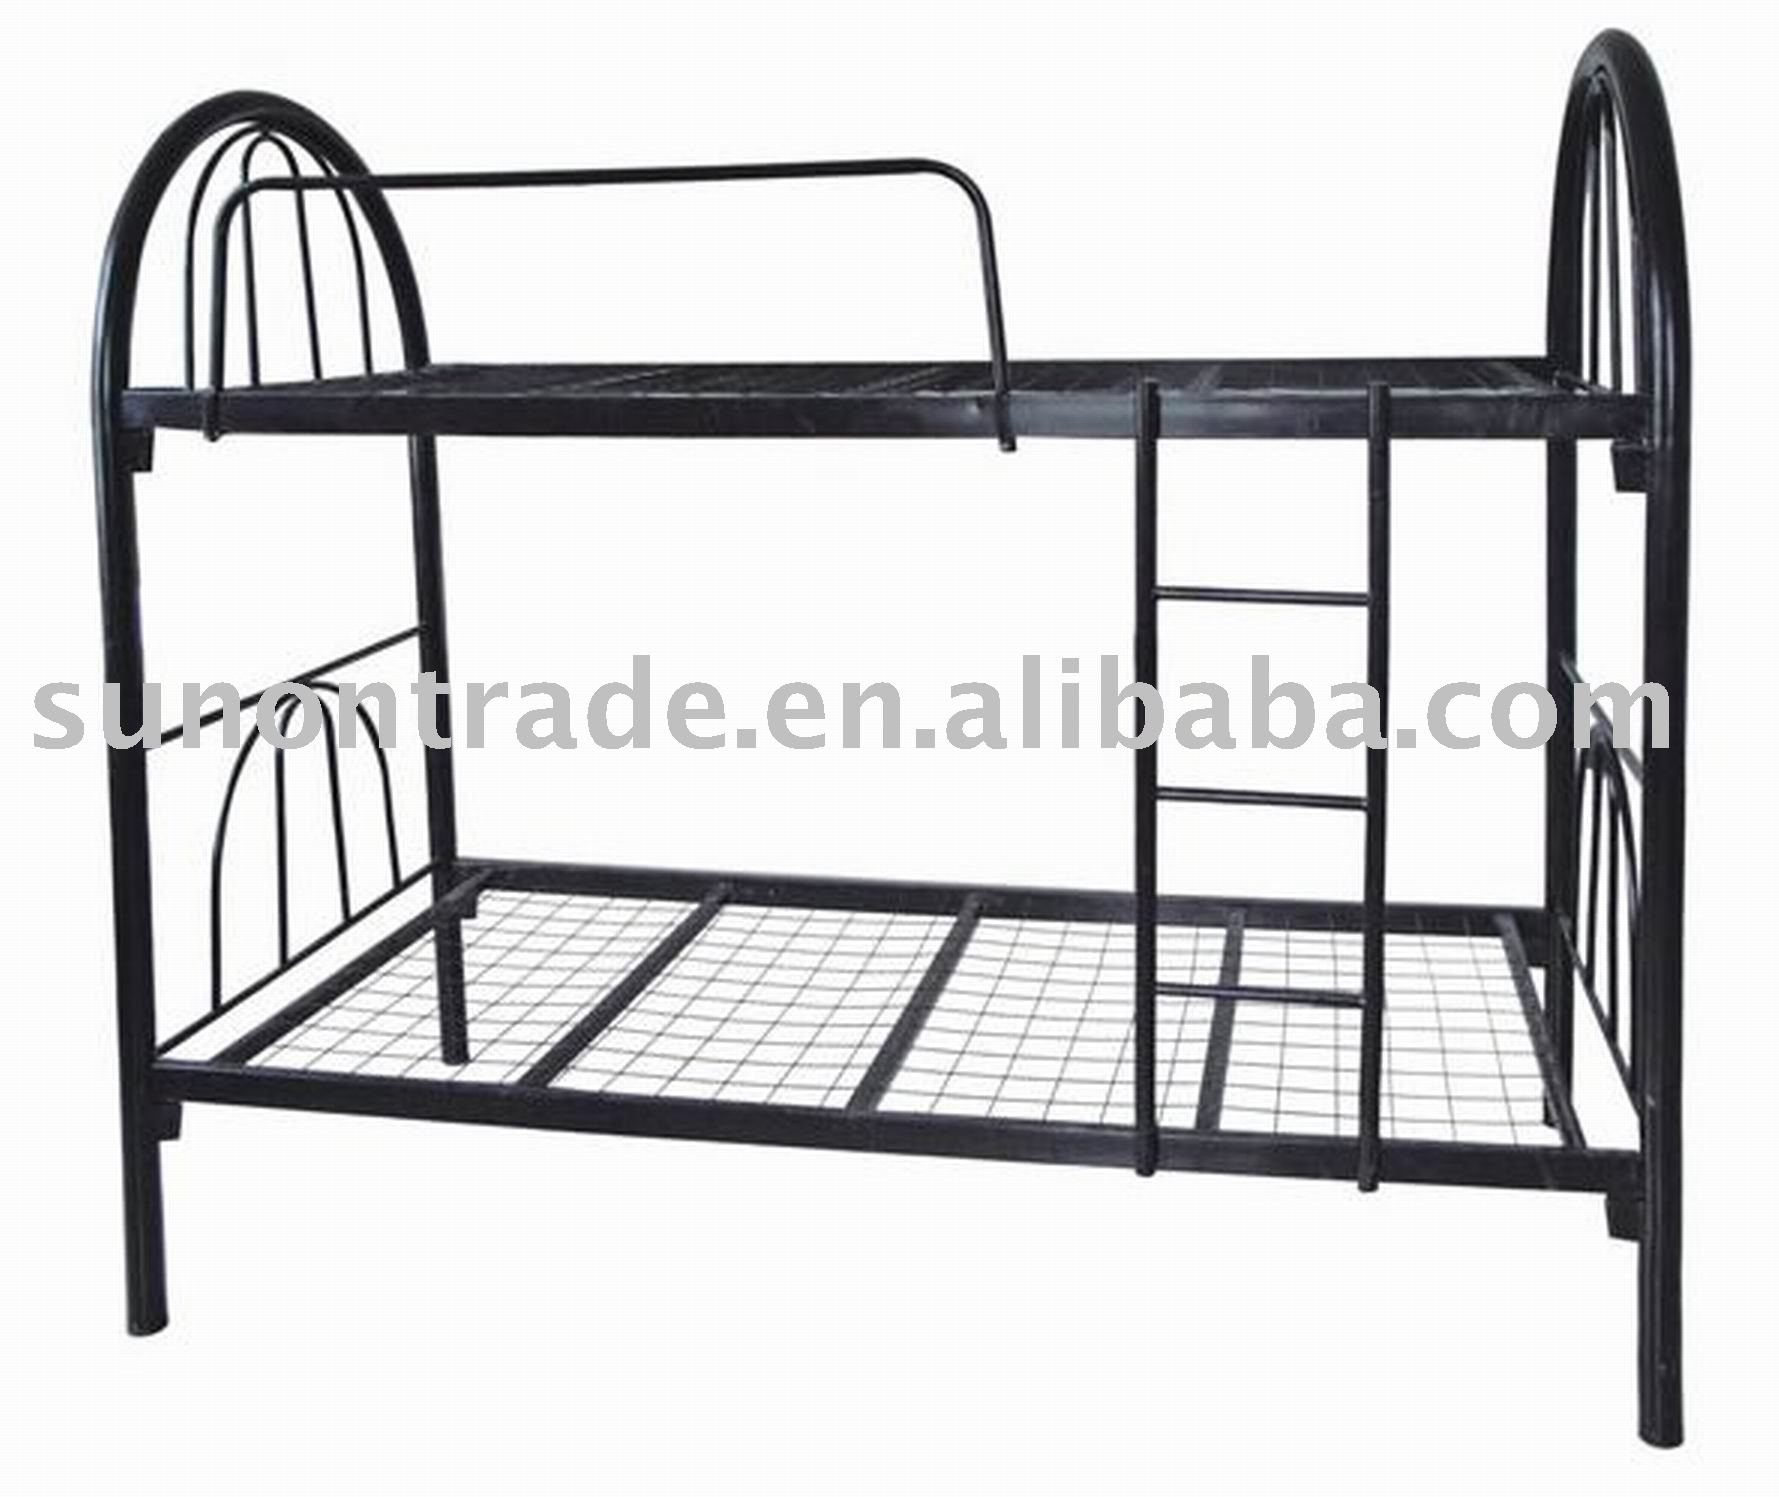 Steel double deck bed - Hot Model Iron L Bunk Bed With Wire For Adult A 03 Buy Iron Bed Military Bunk Bed Double Bunk Beds Product On Alibaba Com